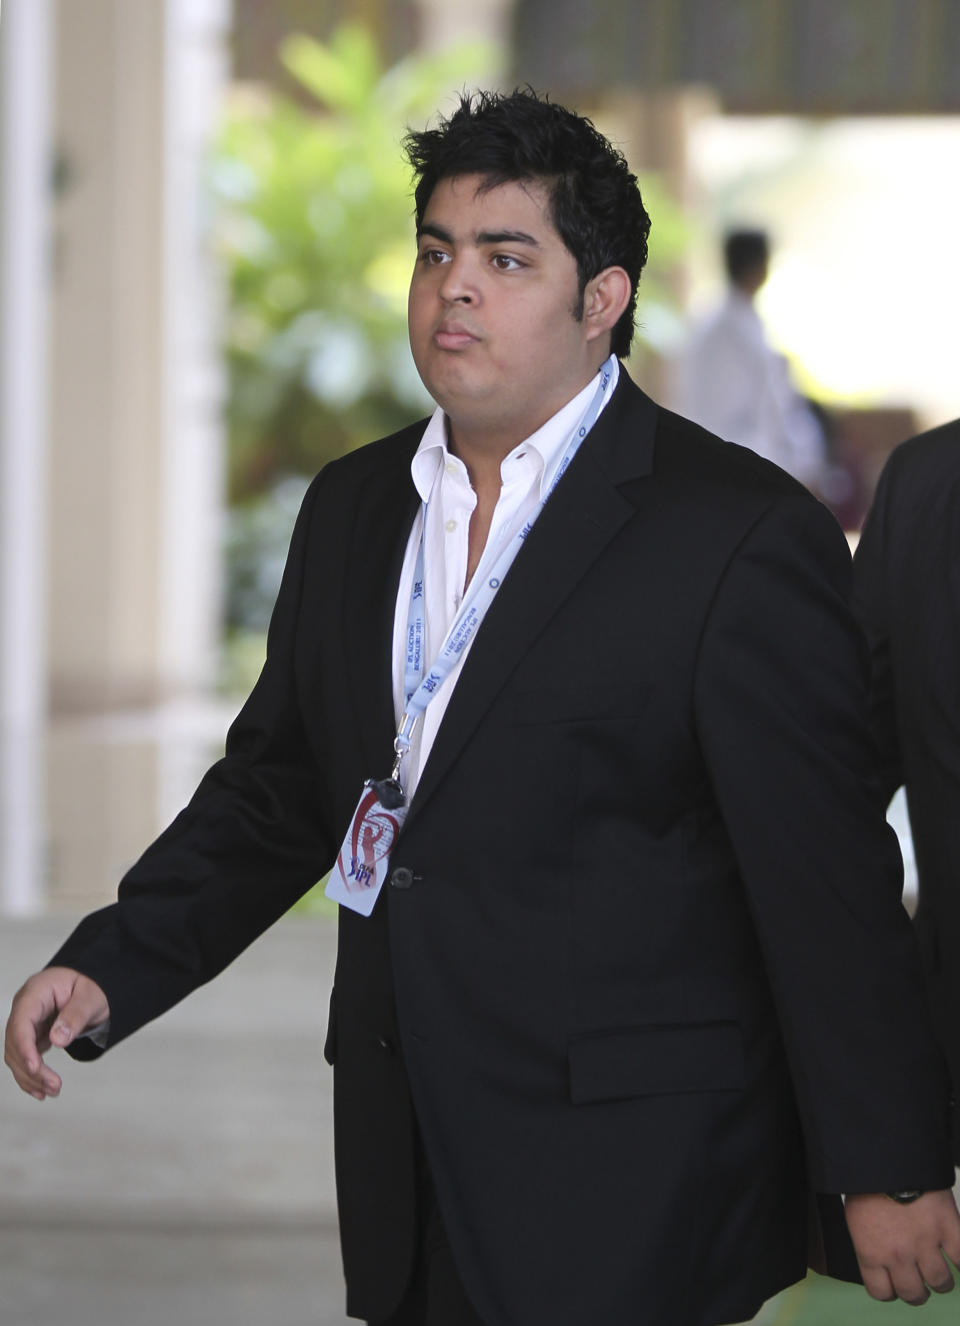 Son of Indian businessman and owner of 'Mumbai Indians' Indian Premier League (IPL) cricket team Mukesh Ambani, Akash Ambani arrives to take part in the second day of The IPL player auction in Bangalore on January 9, 2011, ahead of the fourth season of the T20 tournament. The tournament, to be held from April 8 to May 22, will feature 10 teams, including two new sides -- Pune Warriors and Kochi. AFP PHOTO/STR